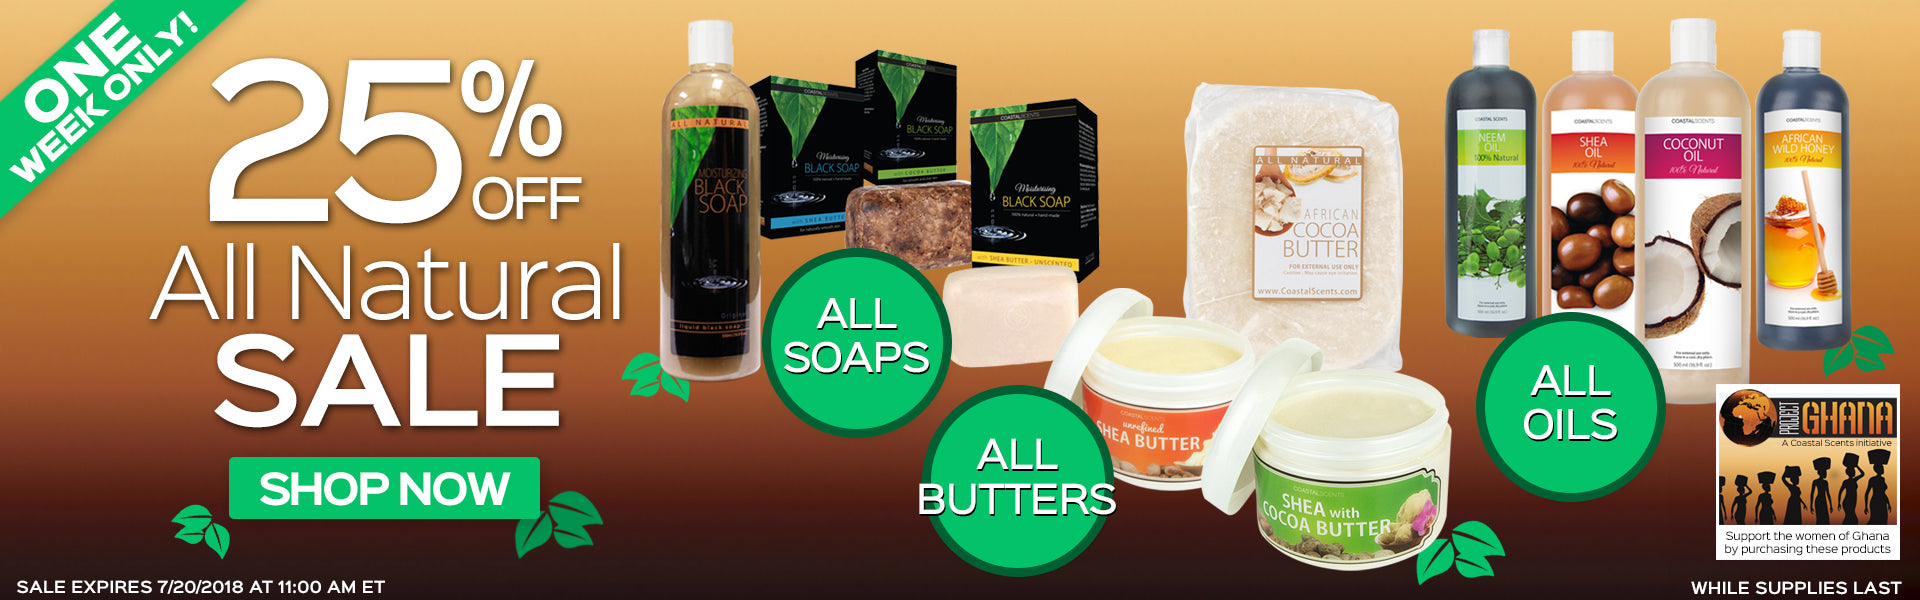 25% Off All Natural Products